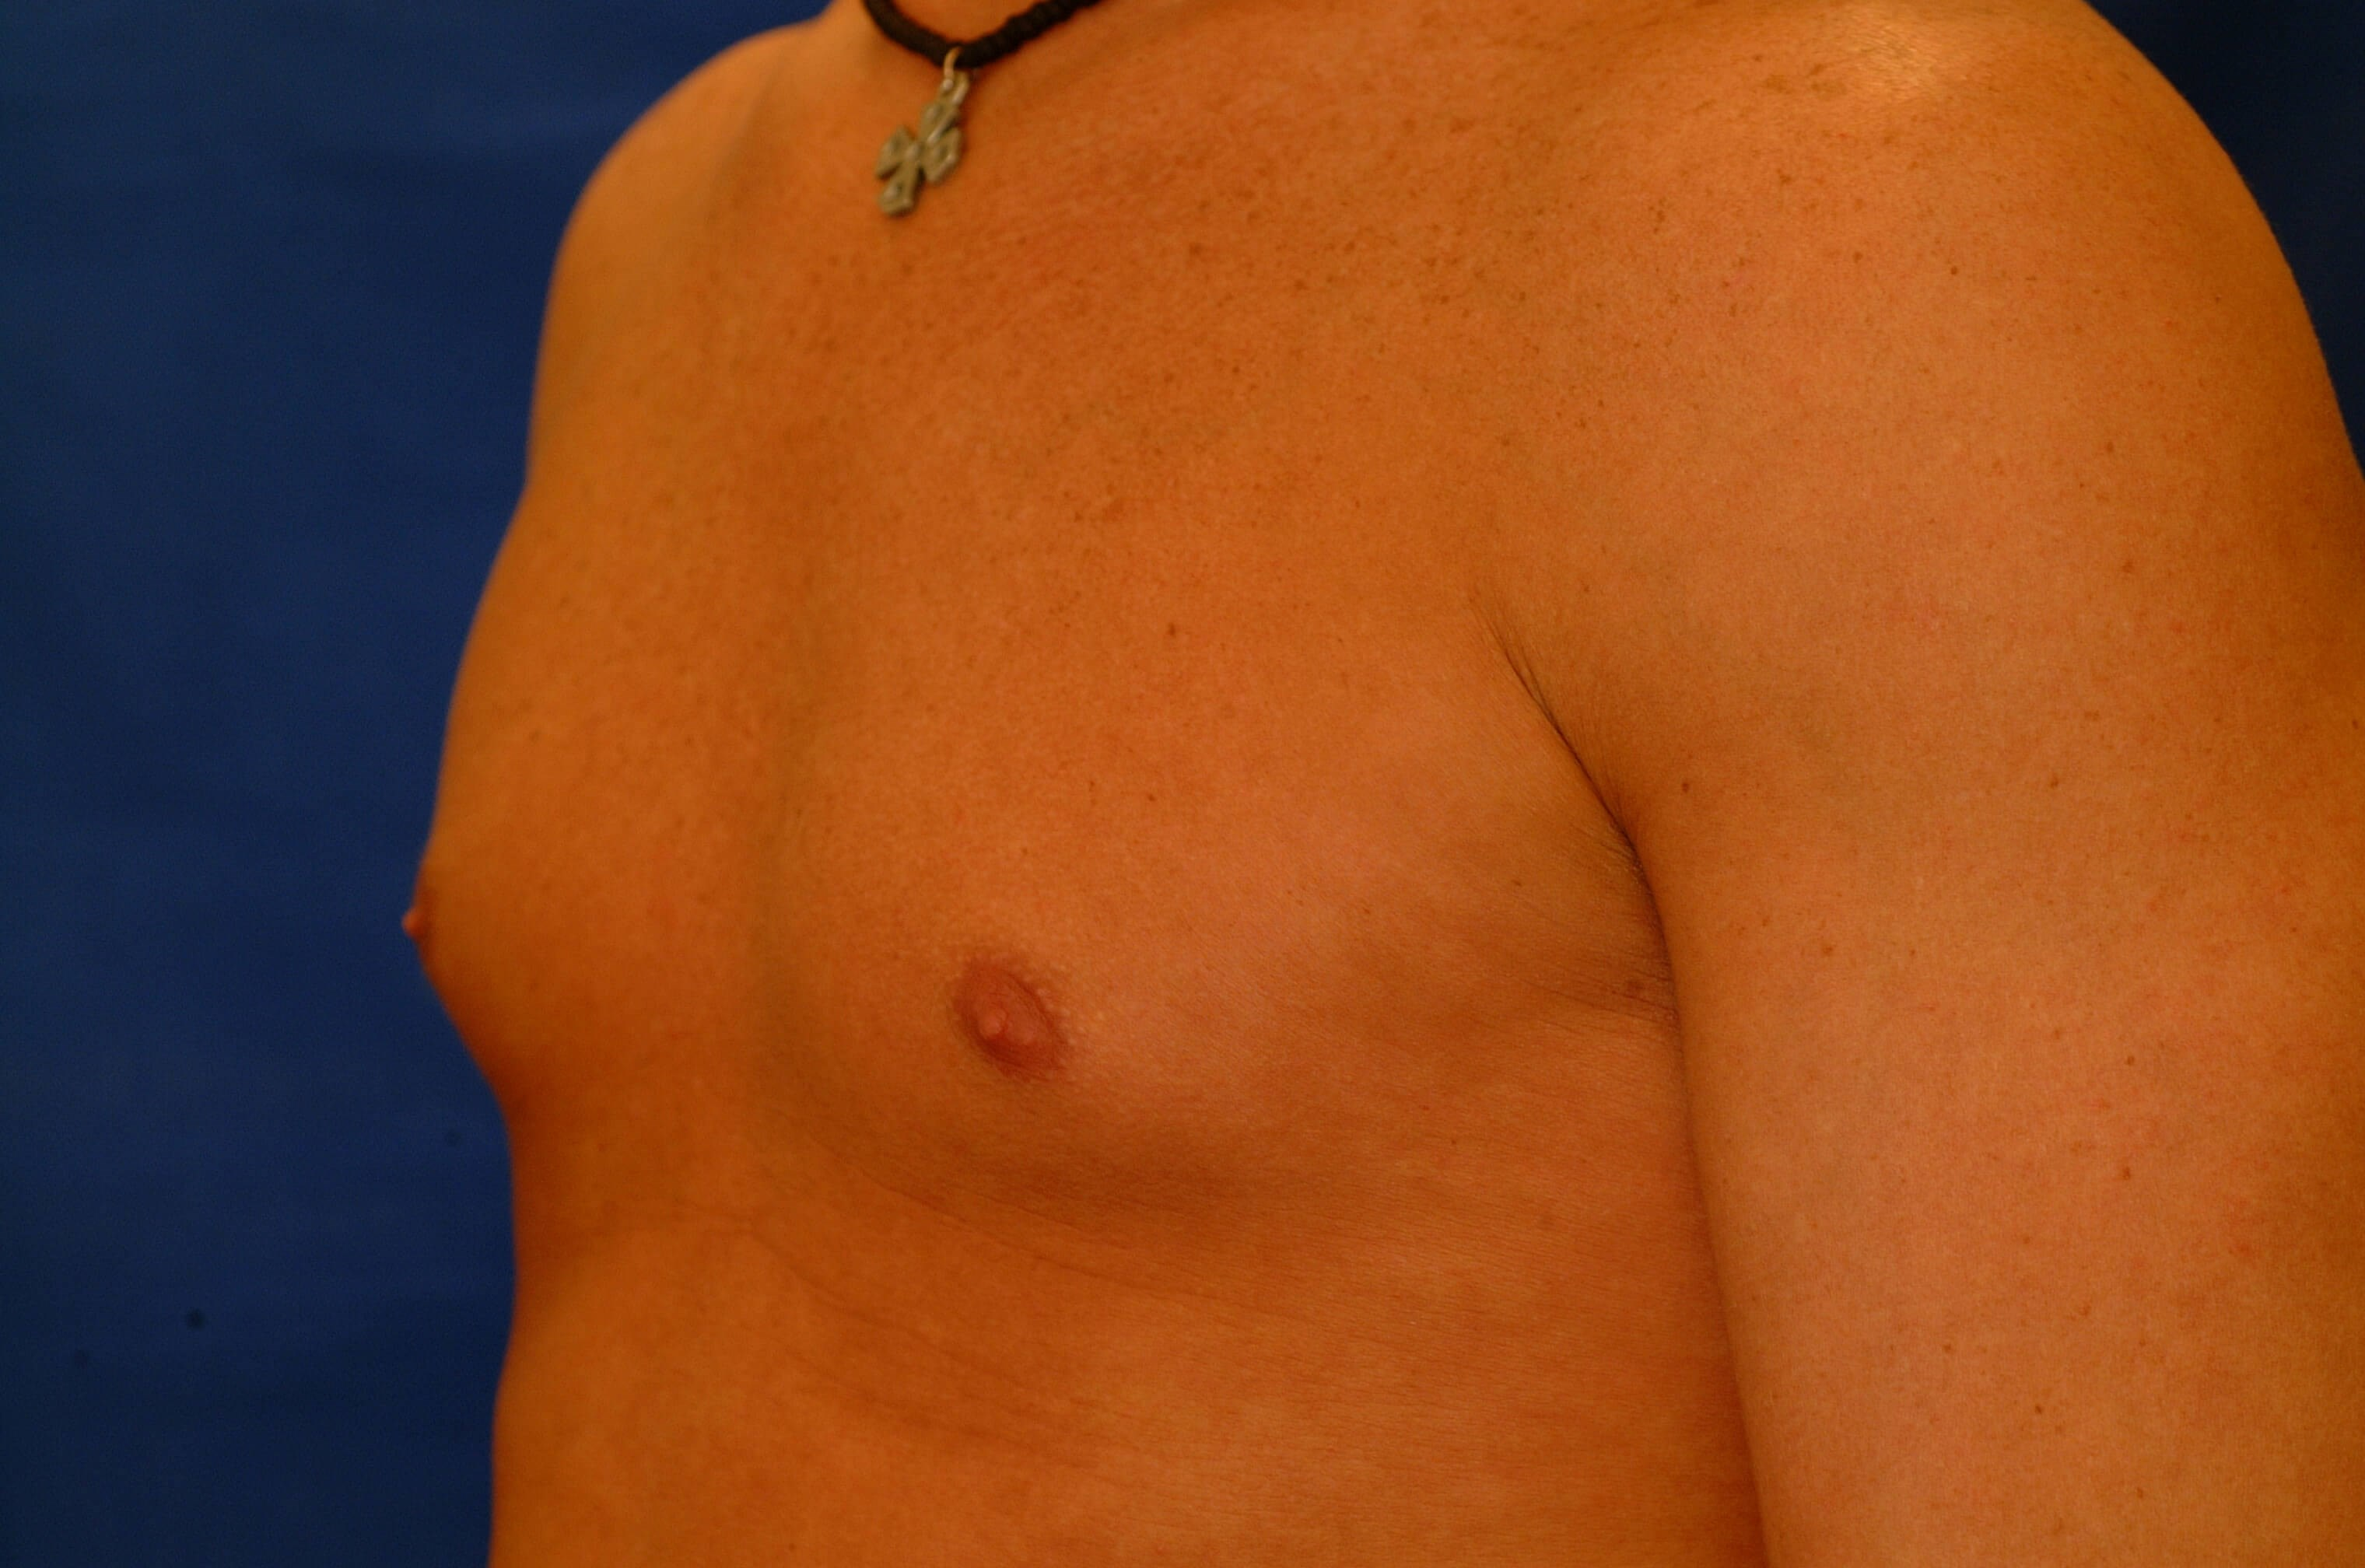 Newport Beach Pectoral Implant Oblique View Before